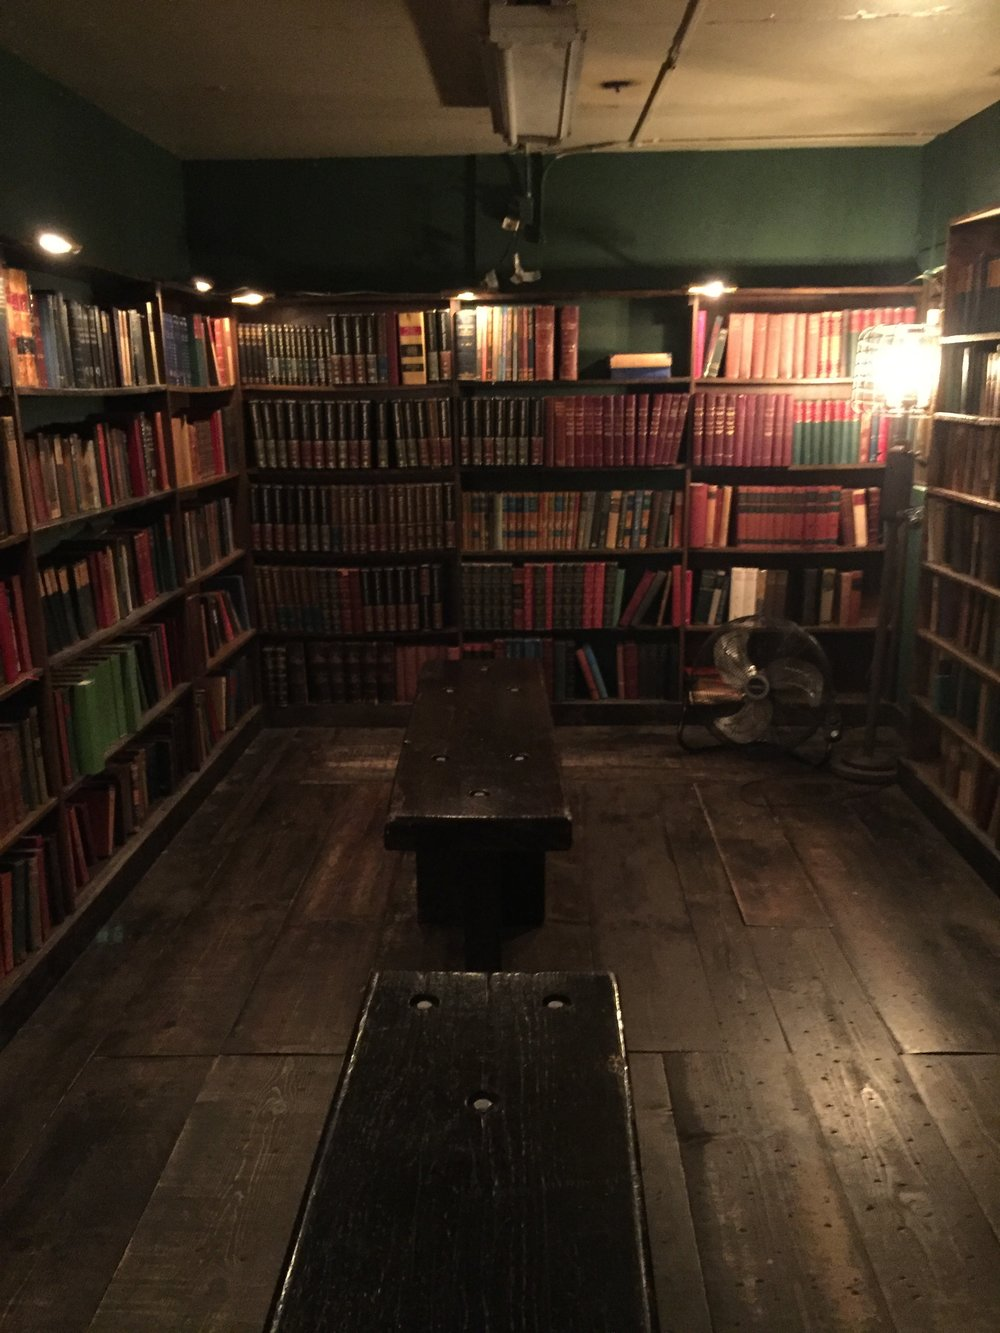 [image description: One of the old bank vaults in The Last Bookstore that's been repurposed into a room with old books. It's dimly lit and there are two benches in the middle for people to sit and read.]